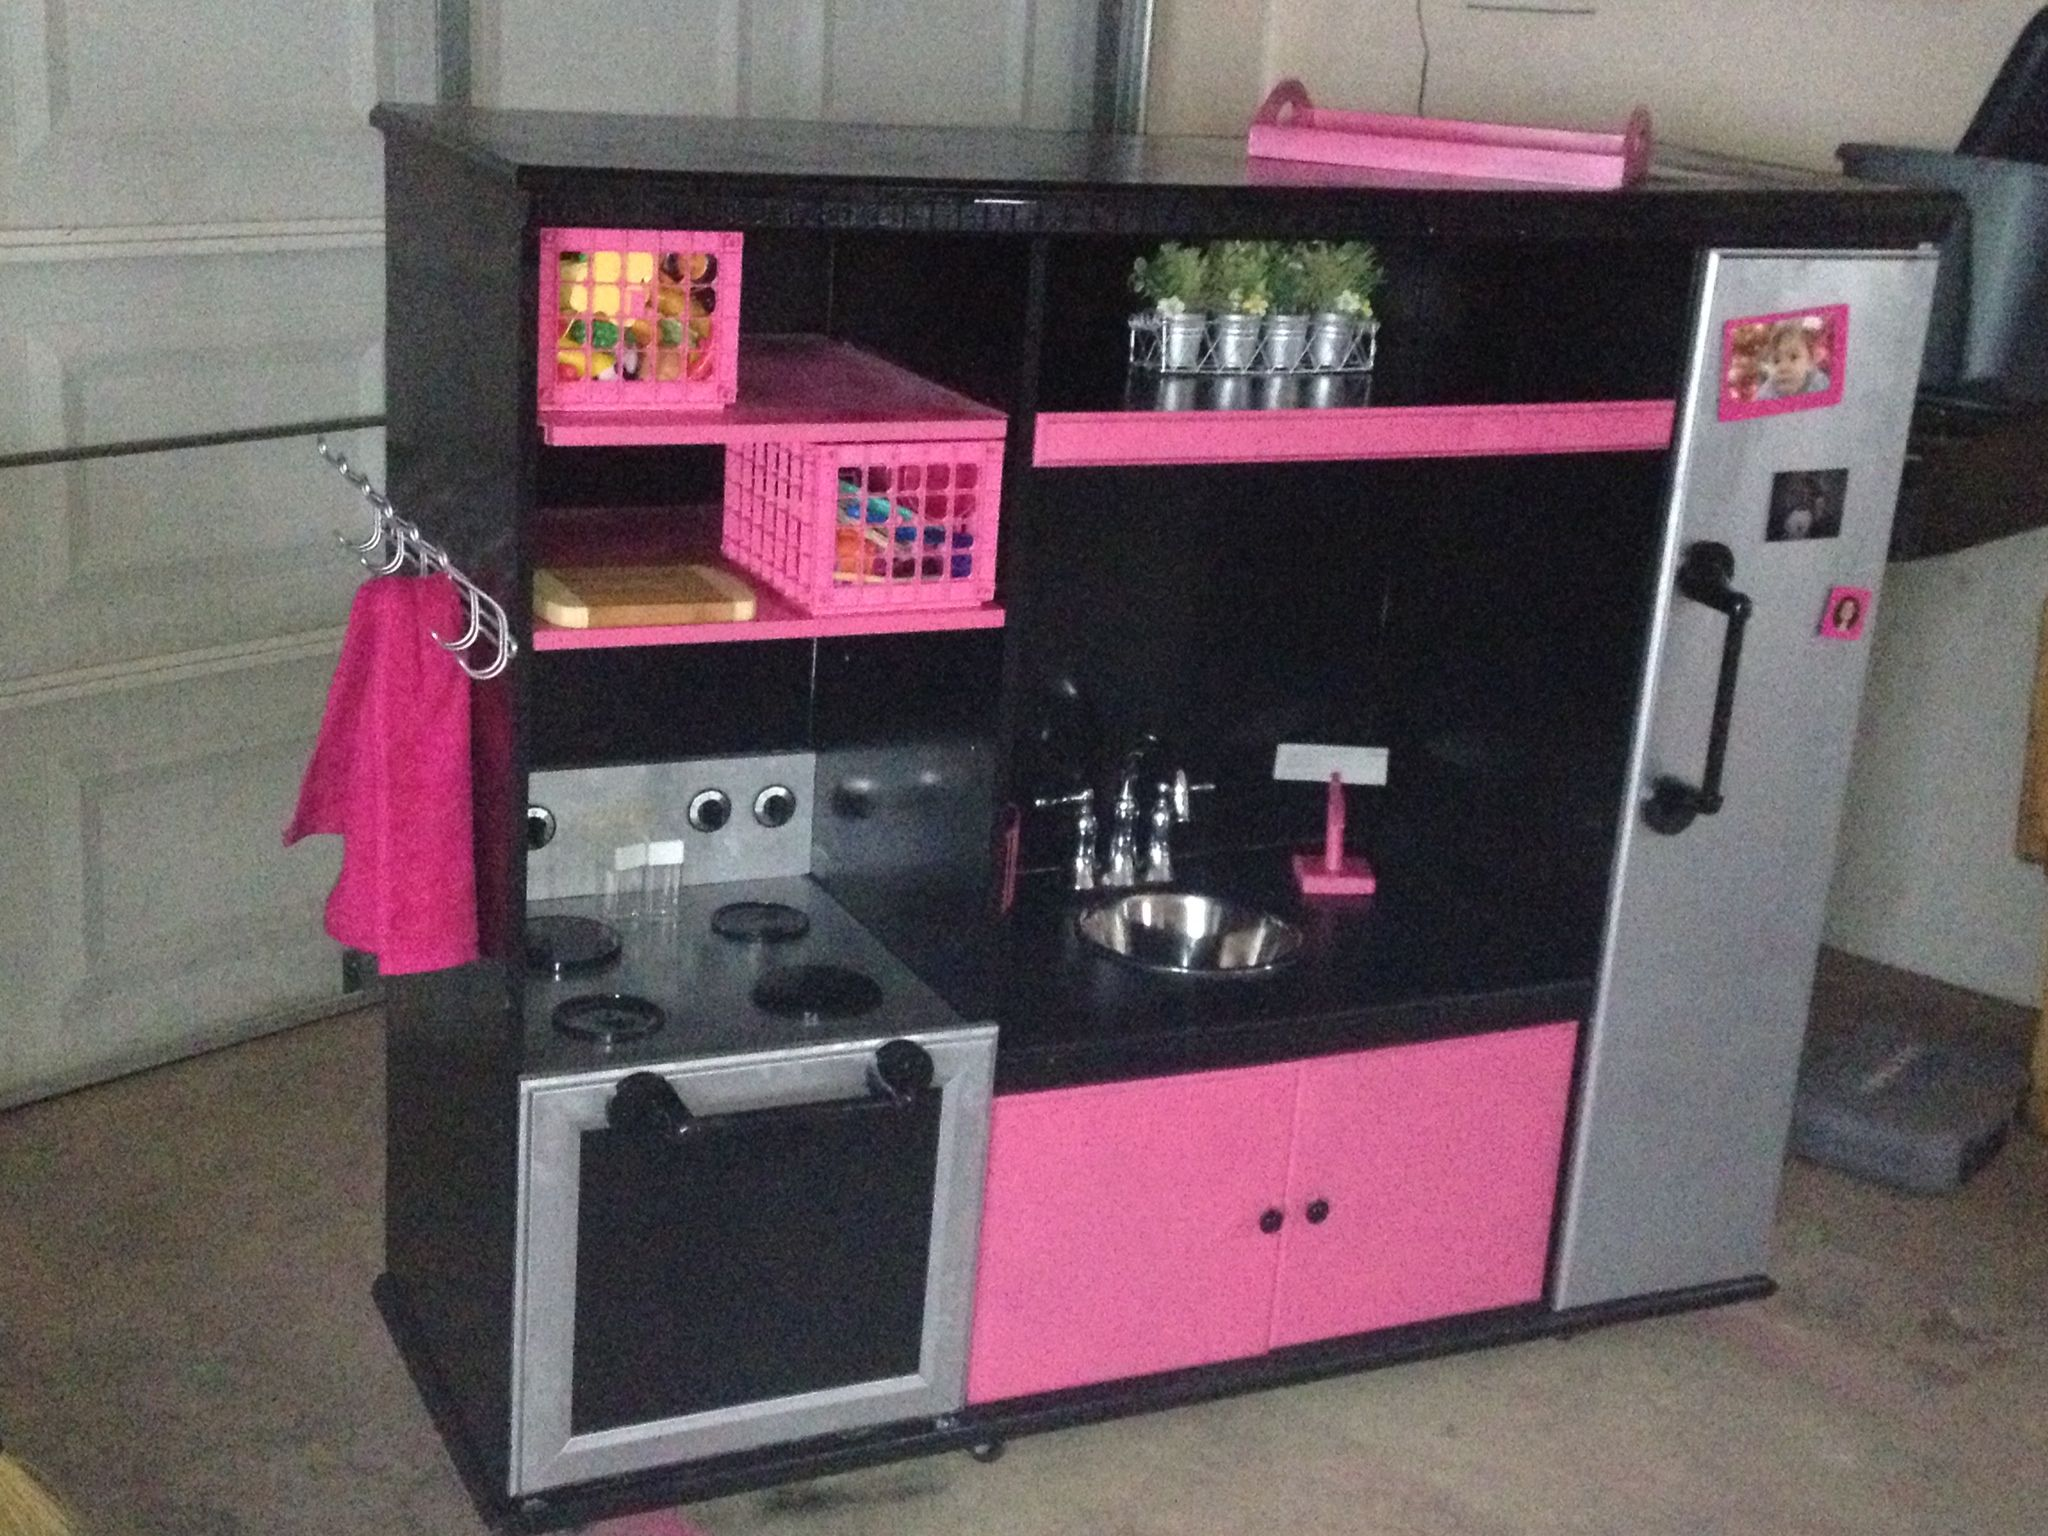 tasty home entertainment center ideas. Our DIY play kitchen out of an old entertainment center